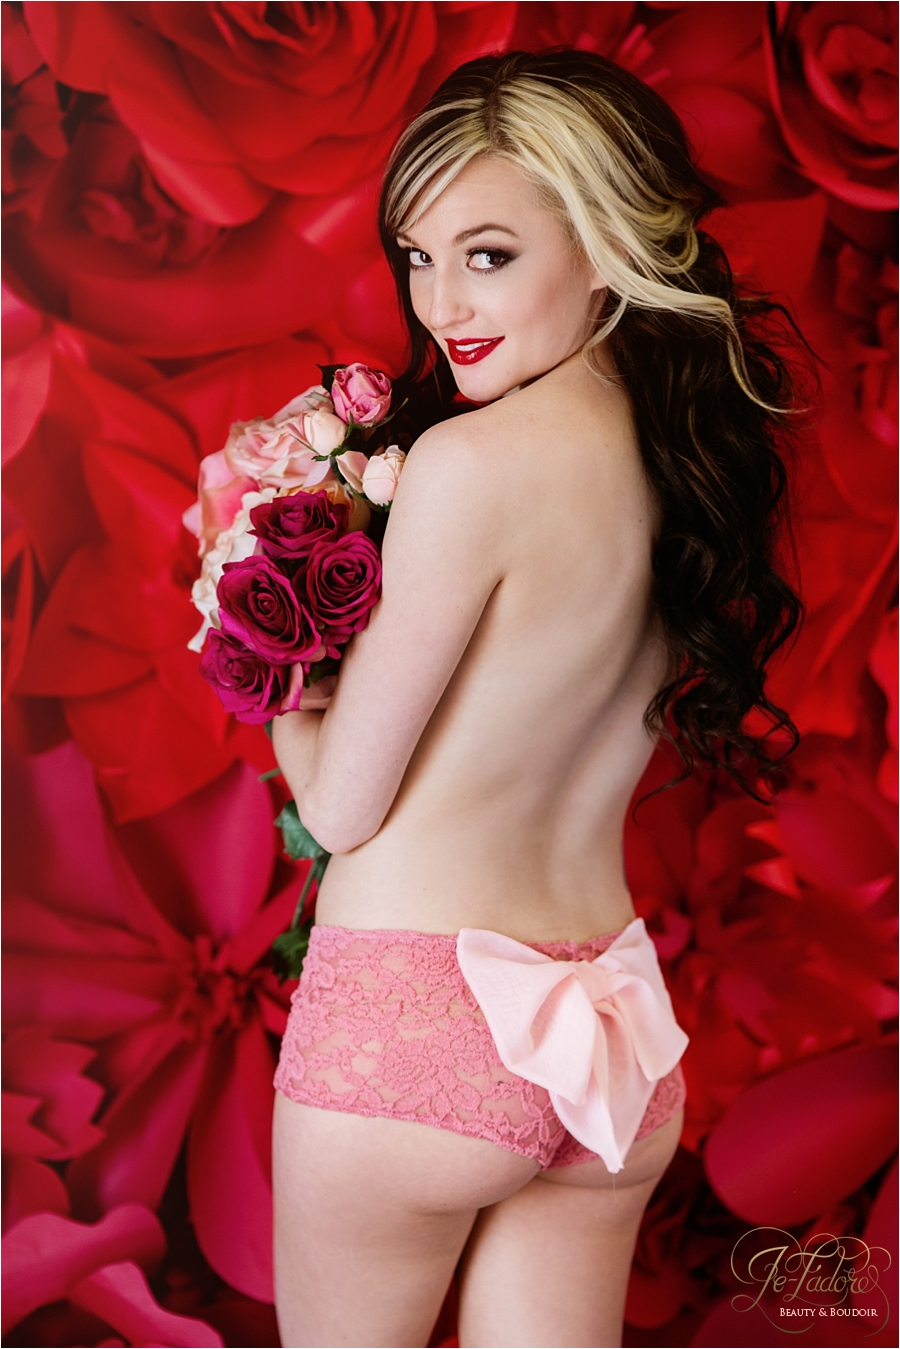 sweet valentine's day boudoir photo shoot pink lingerie